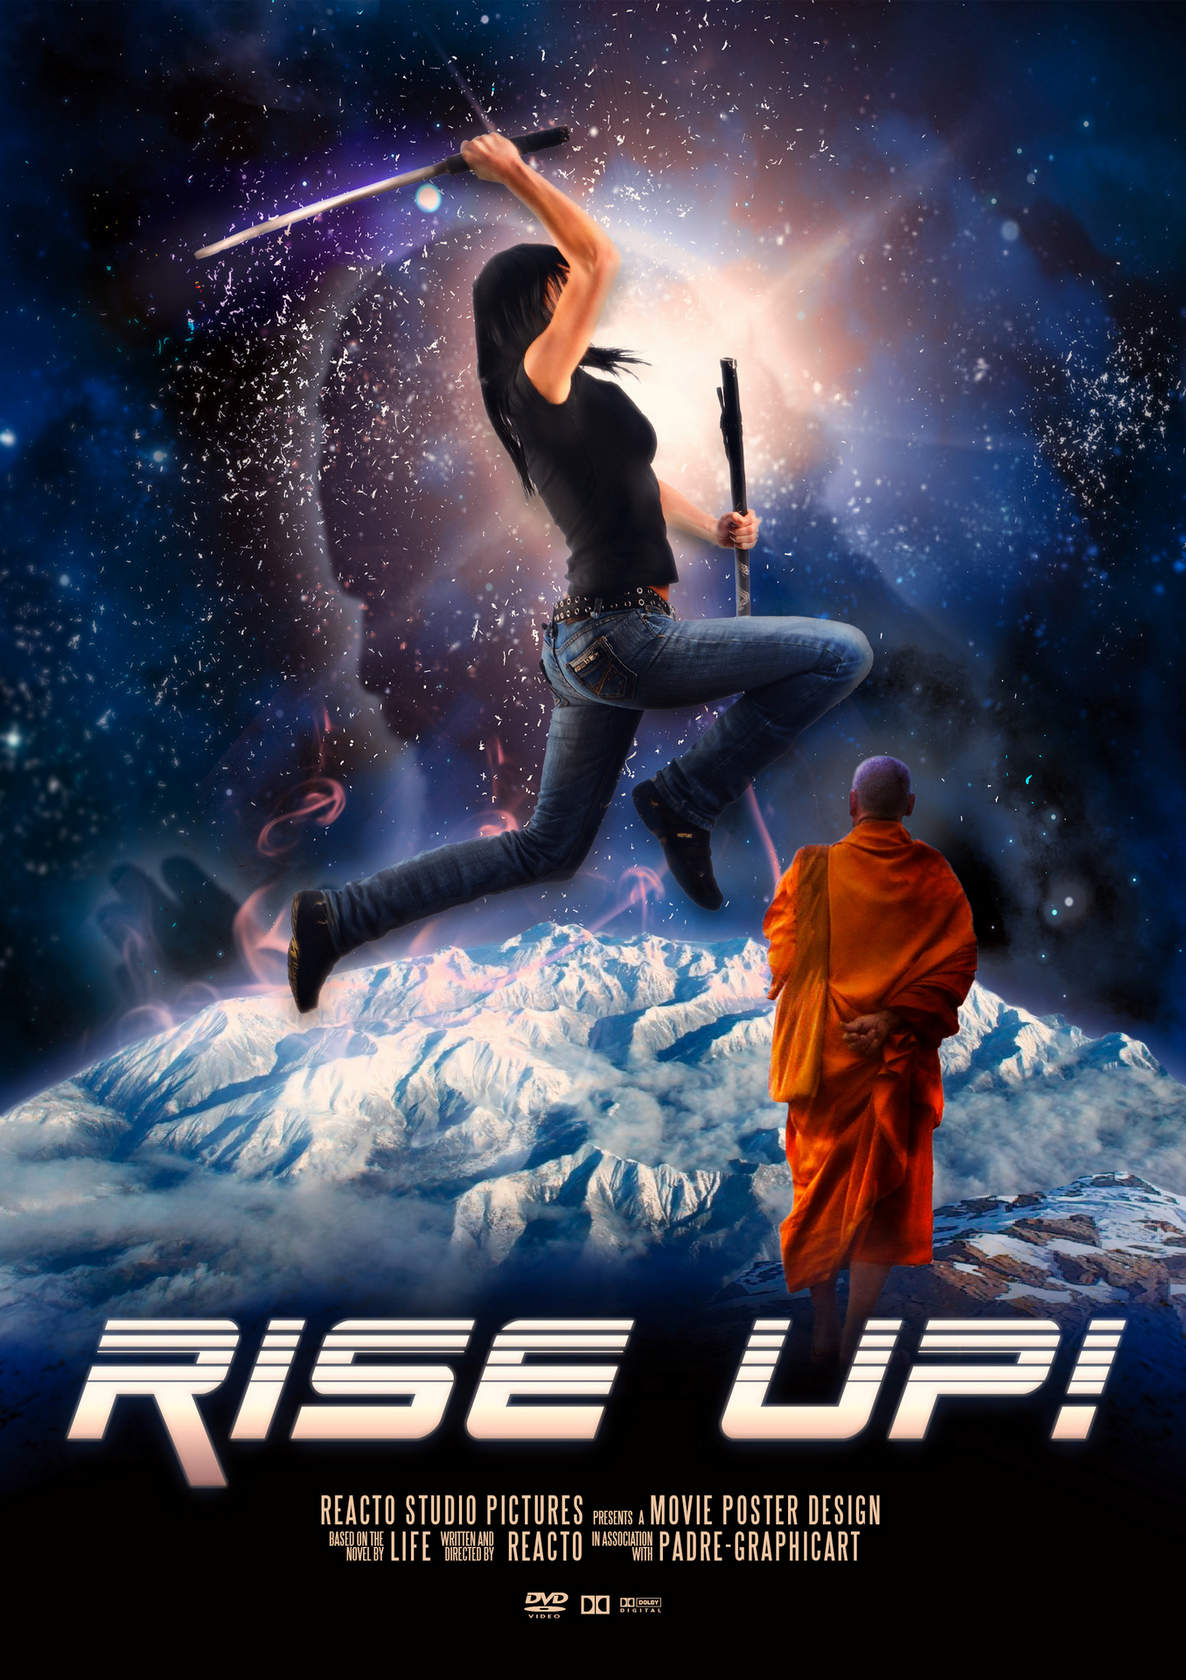 Plakat filmowy - artwork - rise up!